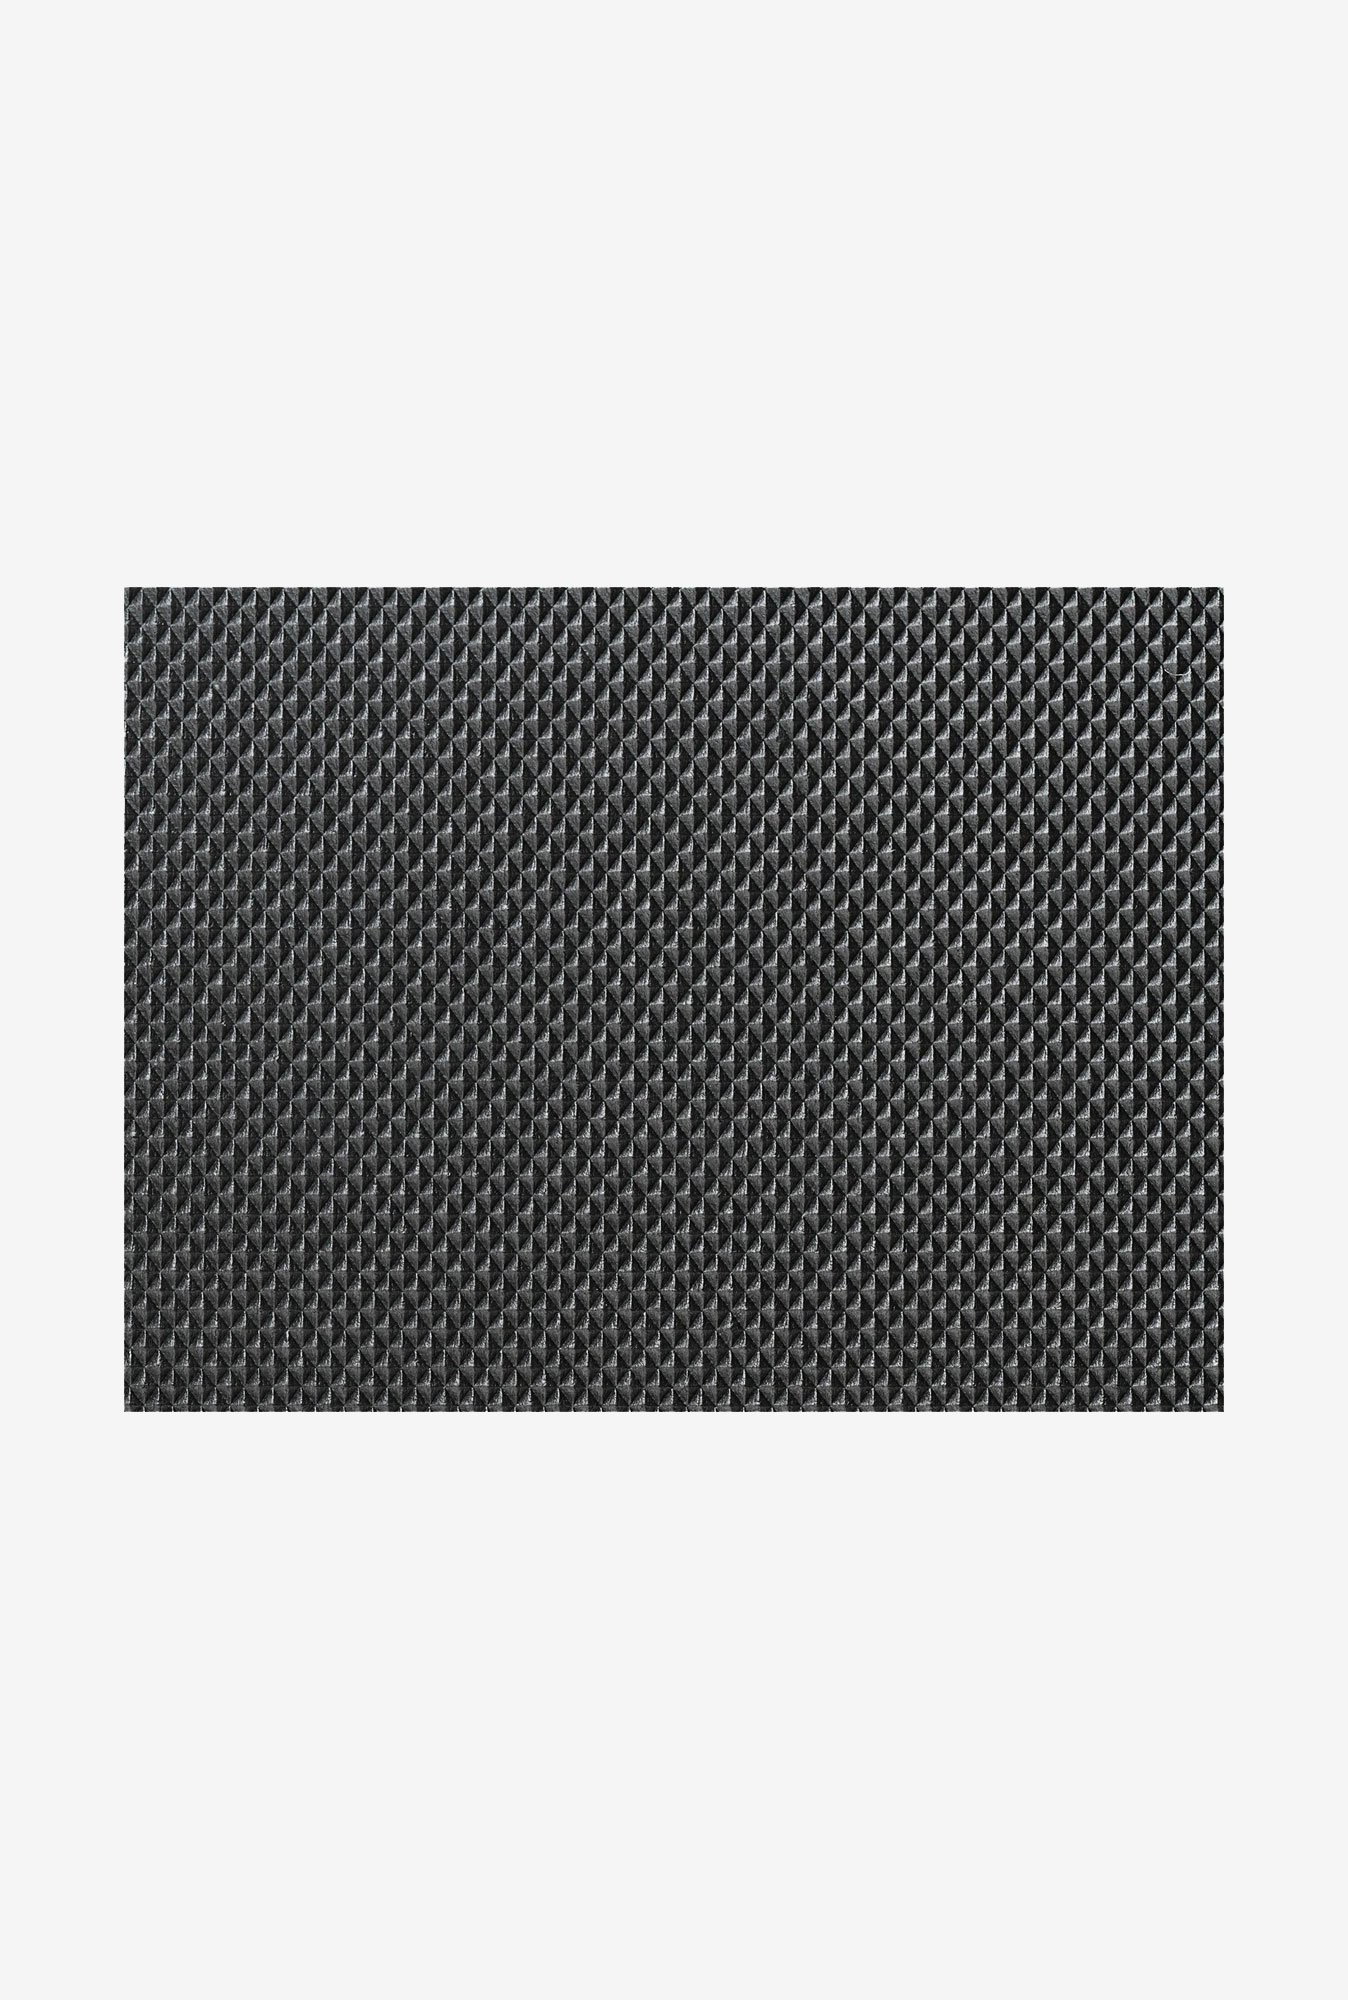 Japan Hobby Tool 215 x 265mm Leather for Camera, Lens